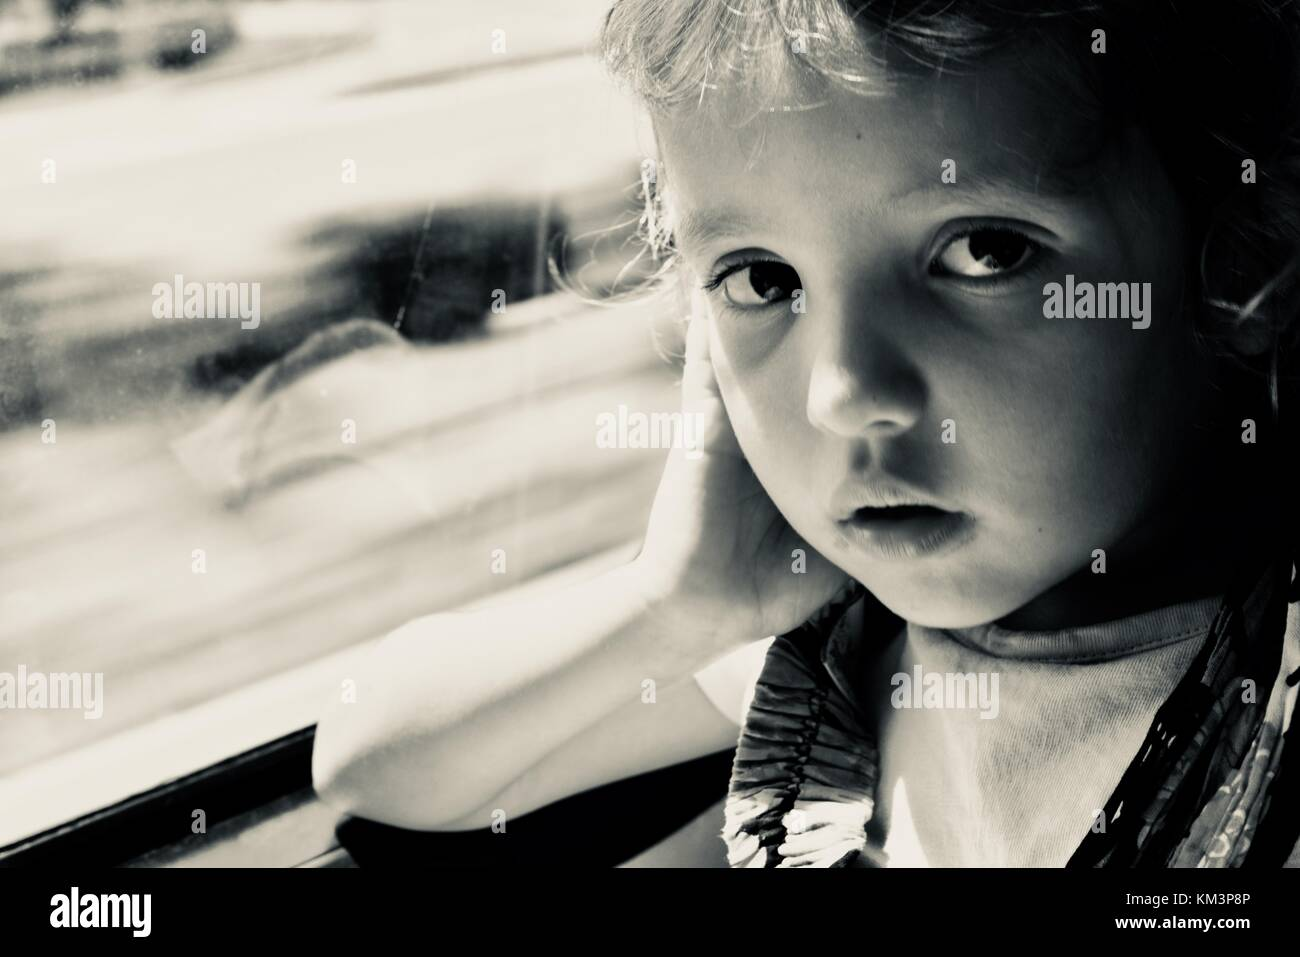 Young girl looking at camera and thinking, Townsville, Queensland, Australia - Stock Image